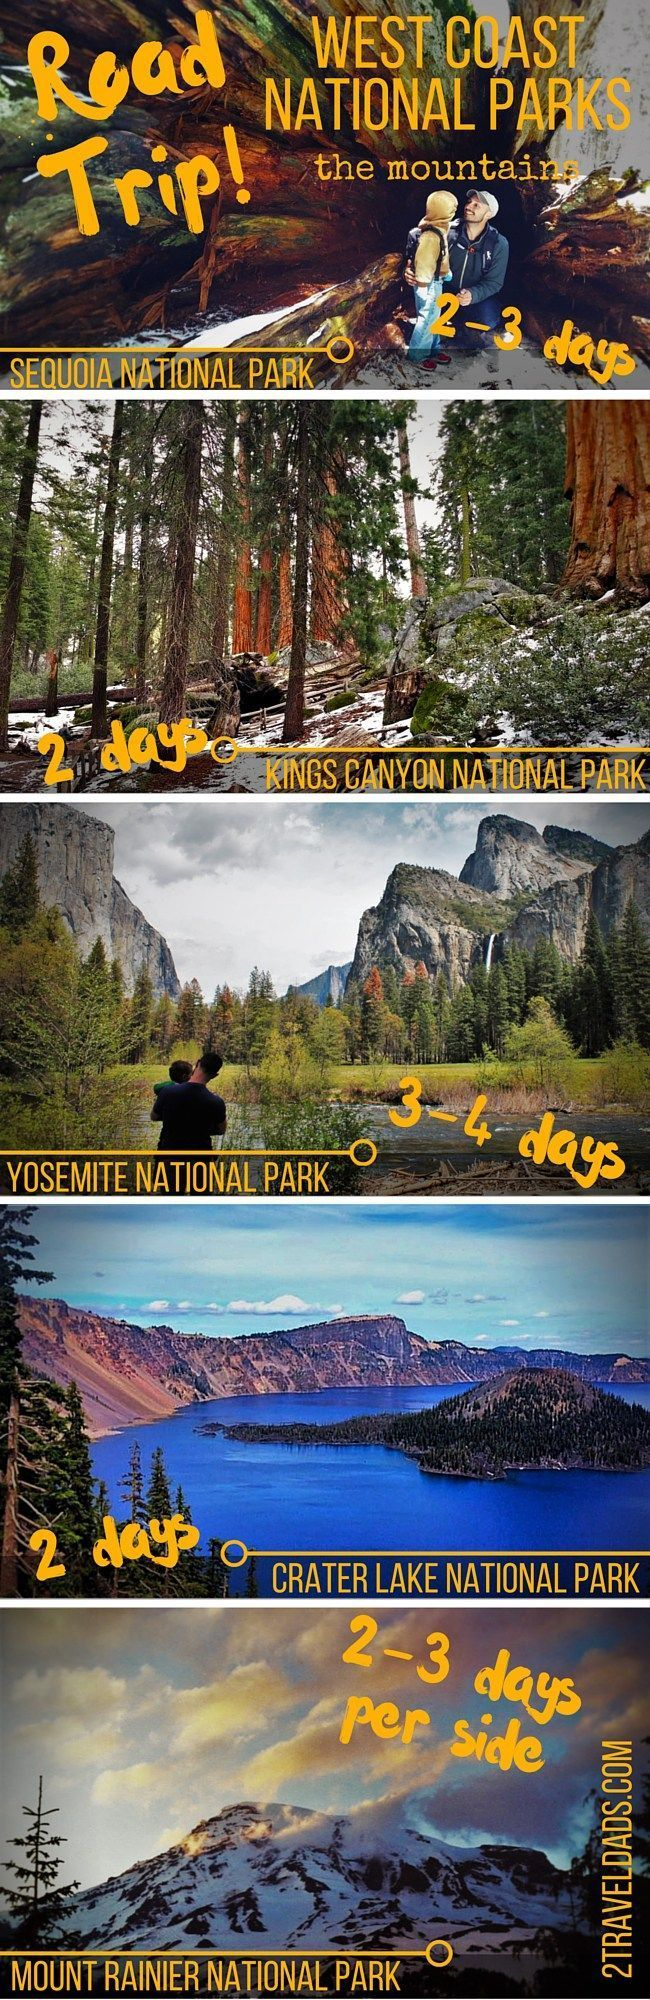 Ideal plan for a West Coast national park road trip, visiting the various mountain national parks! 2traveldads.com http://2traveldads.com/2016/07/05/west-coast-national-park-road-trip-the-mountains